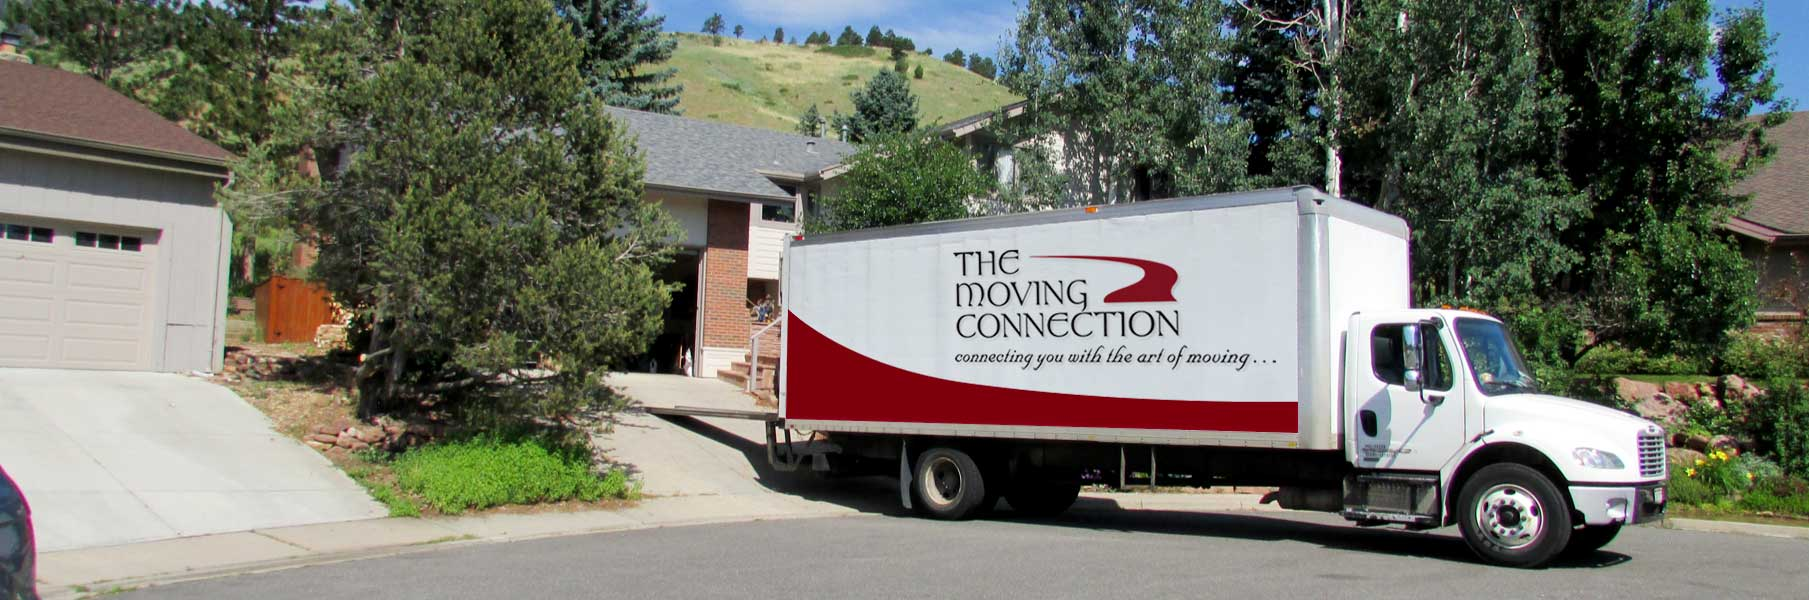 The Moving Connection truck and movers at Boulder job site